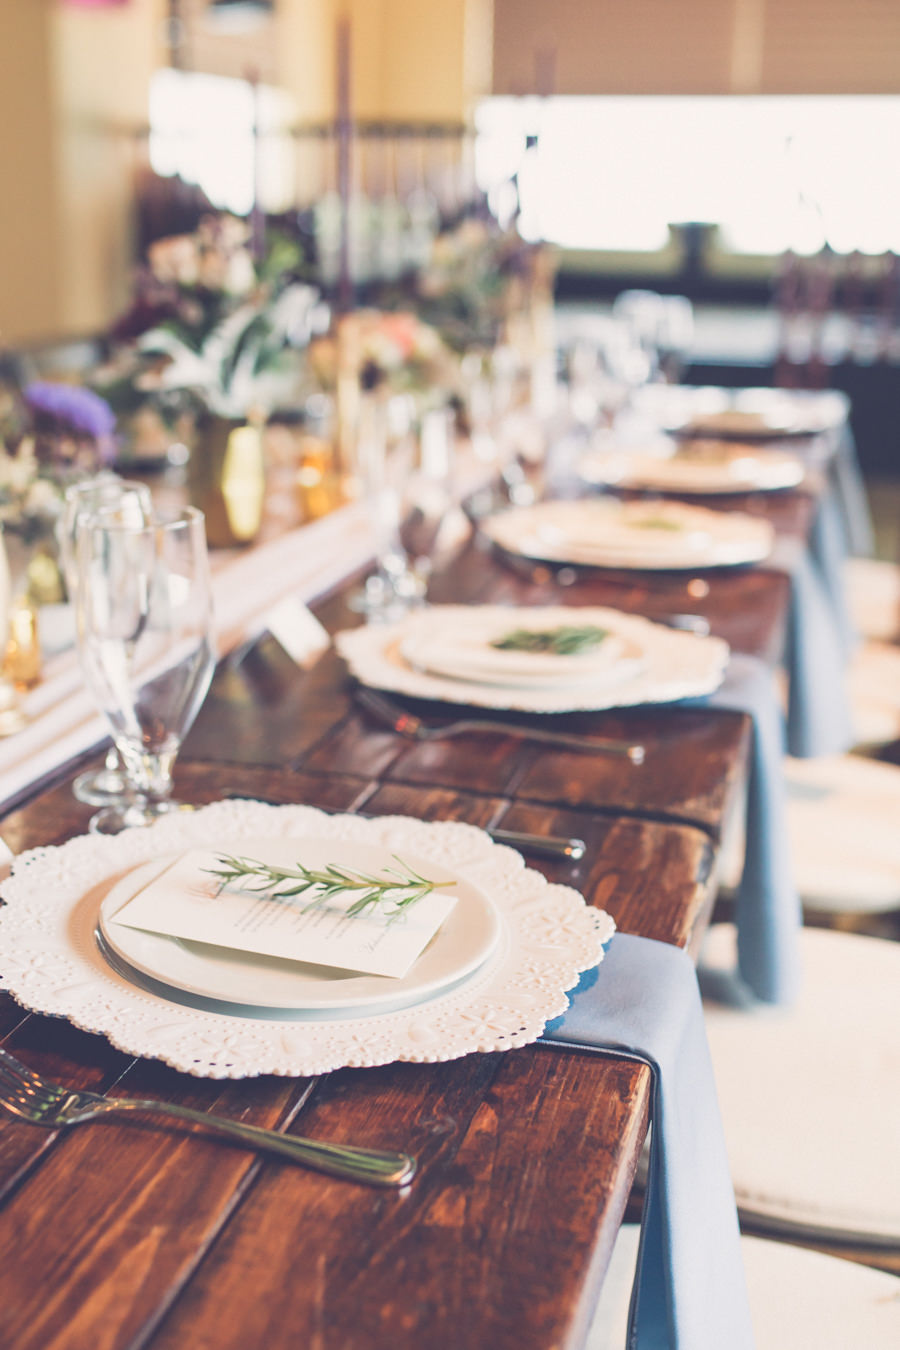 Boho Wedding Reception Table Decor with Long Wooden Table with Blush Runner, Gray Napkins, Gold Accents, and Lace Porcelain Chargers with Rosemary | Tampa Farm Table Rentals A Chair Affair